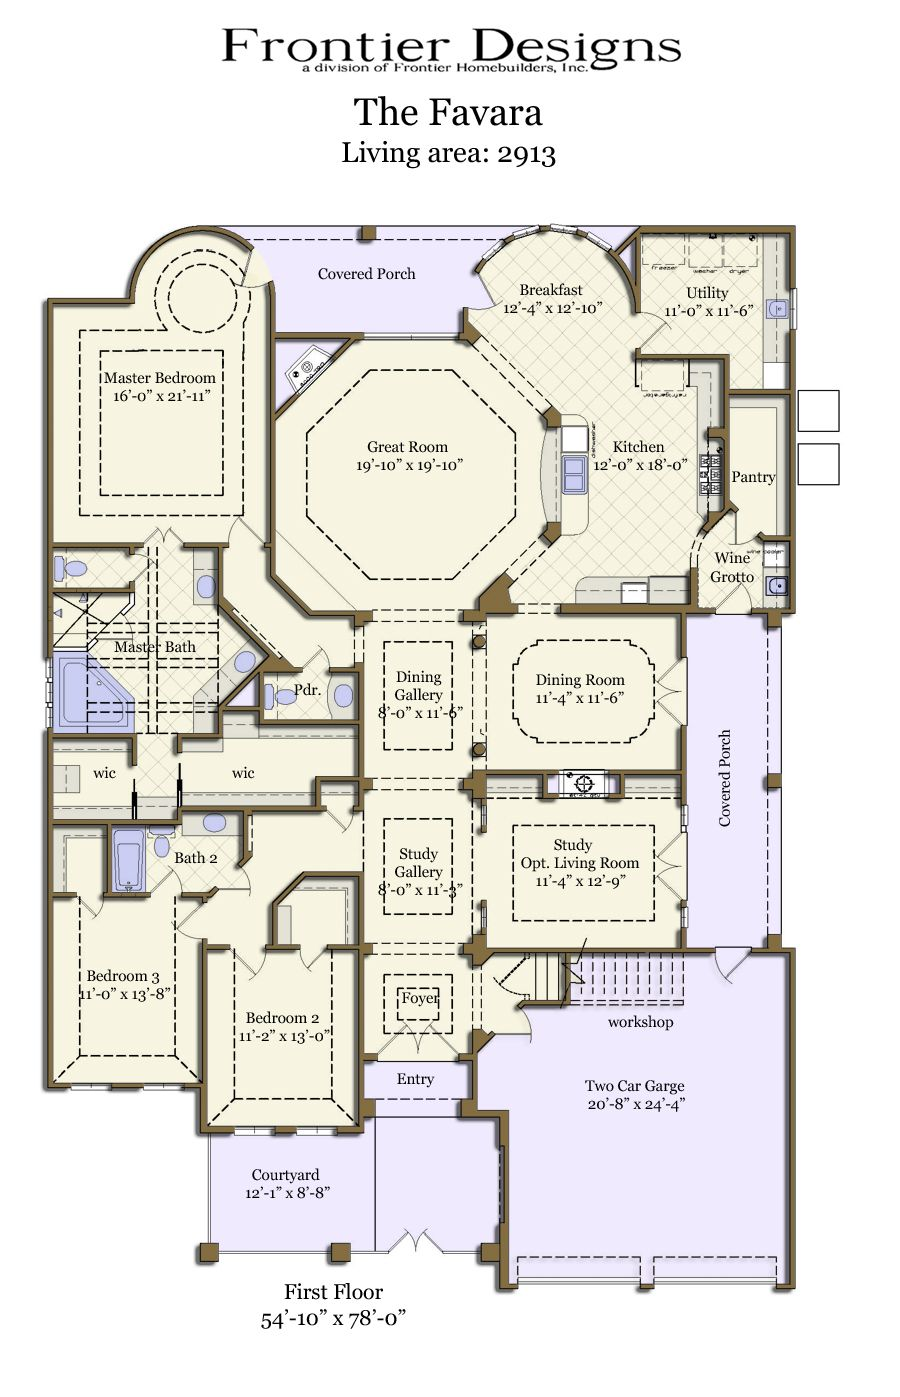 Award Winning Floor Plan Website It Takes You To Is Not The Floorplan Here But I Love The Center Hall Concept And Ba Floor Plans Dream House Plans How To Plan